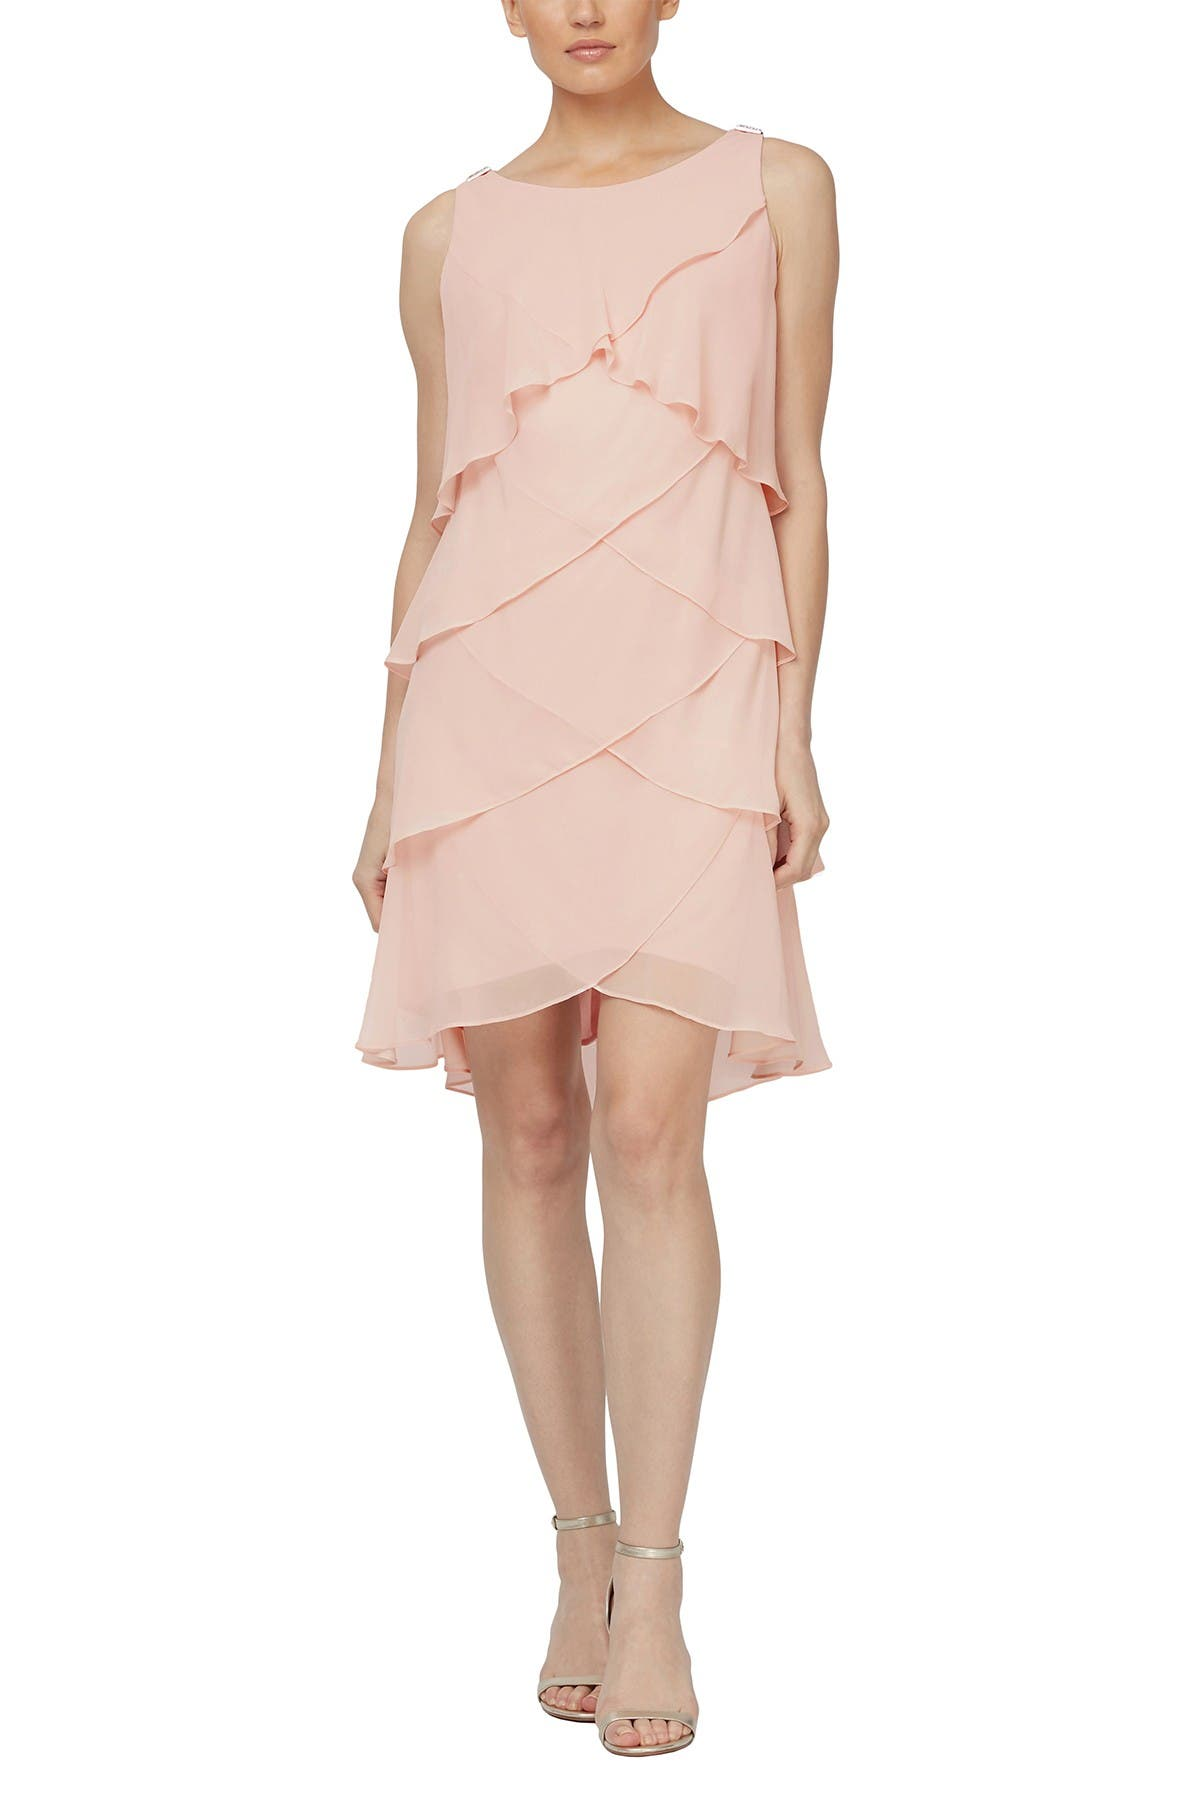 Image of SLNY Tulip Tier Chiffon Dress